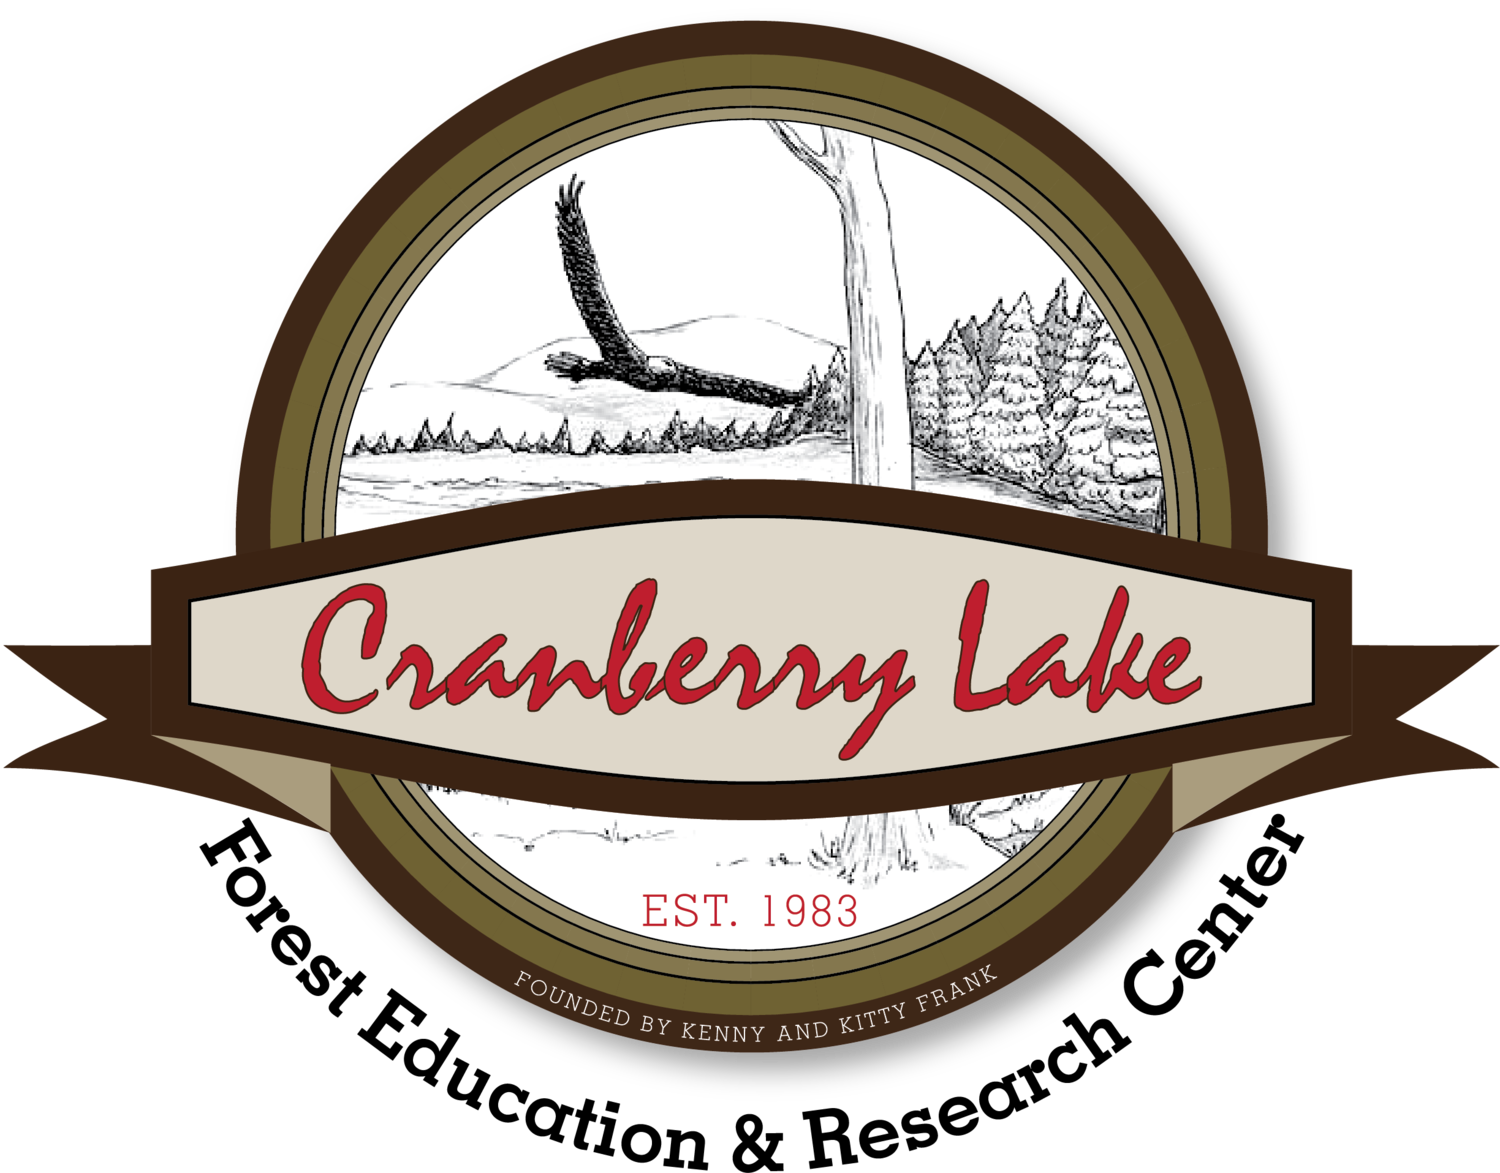 Cranberry Lake Forest Education & Research Center